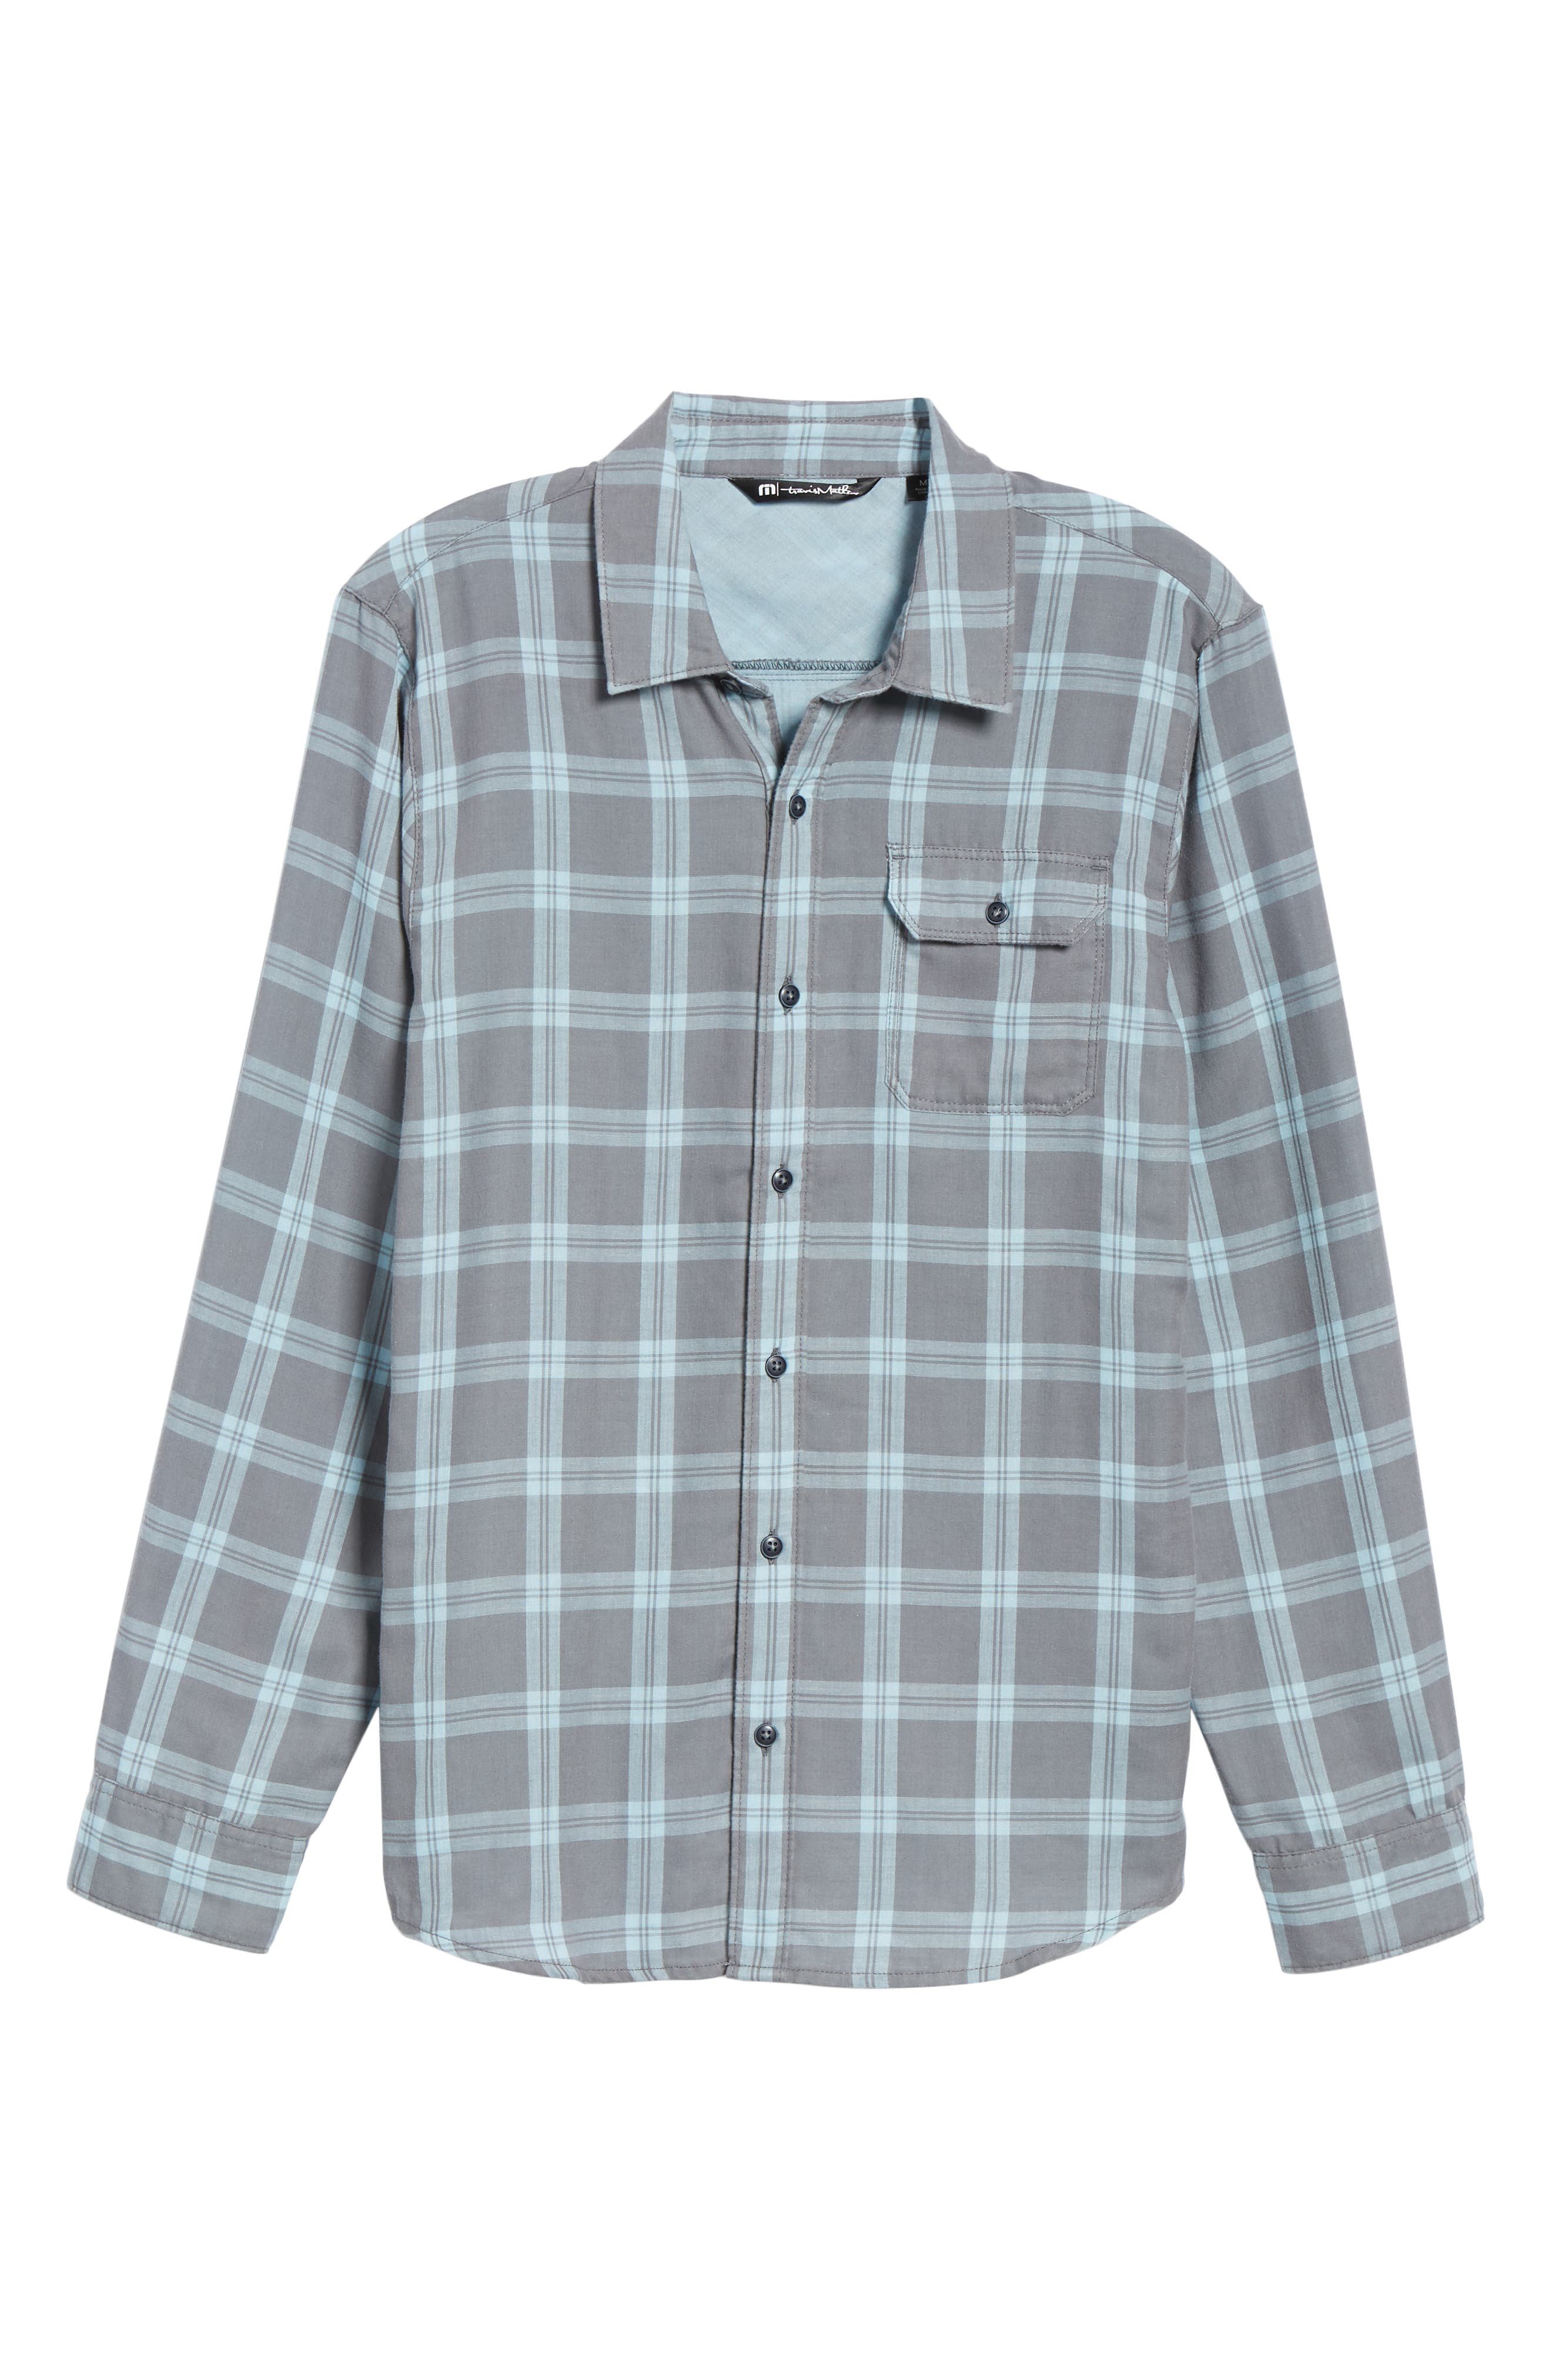 Thomas Regular Fit Check Sport Shirt,                             Alternate thumbnail 5, color,                             QUITE SHADE